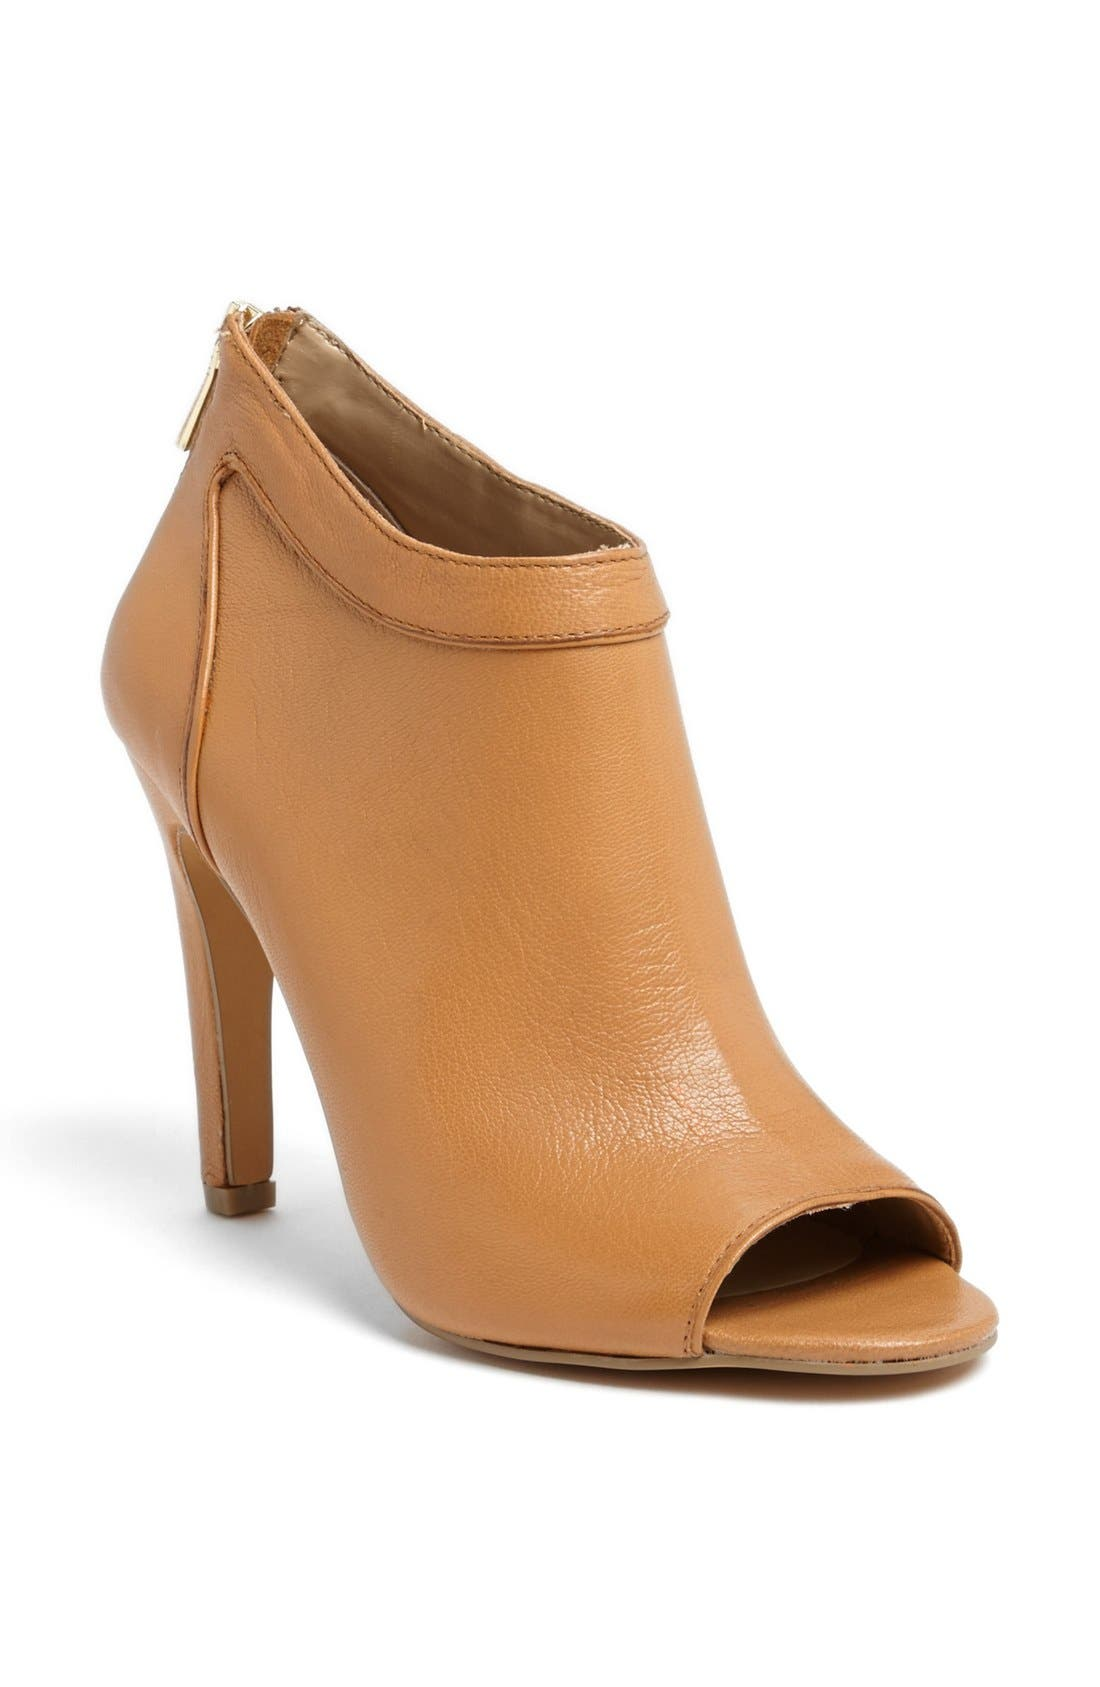 Main Image - Sole Society 'Des' Bootie